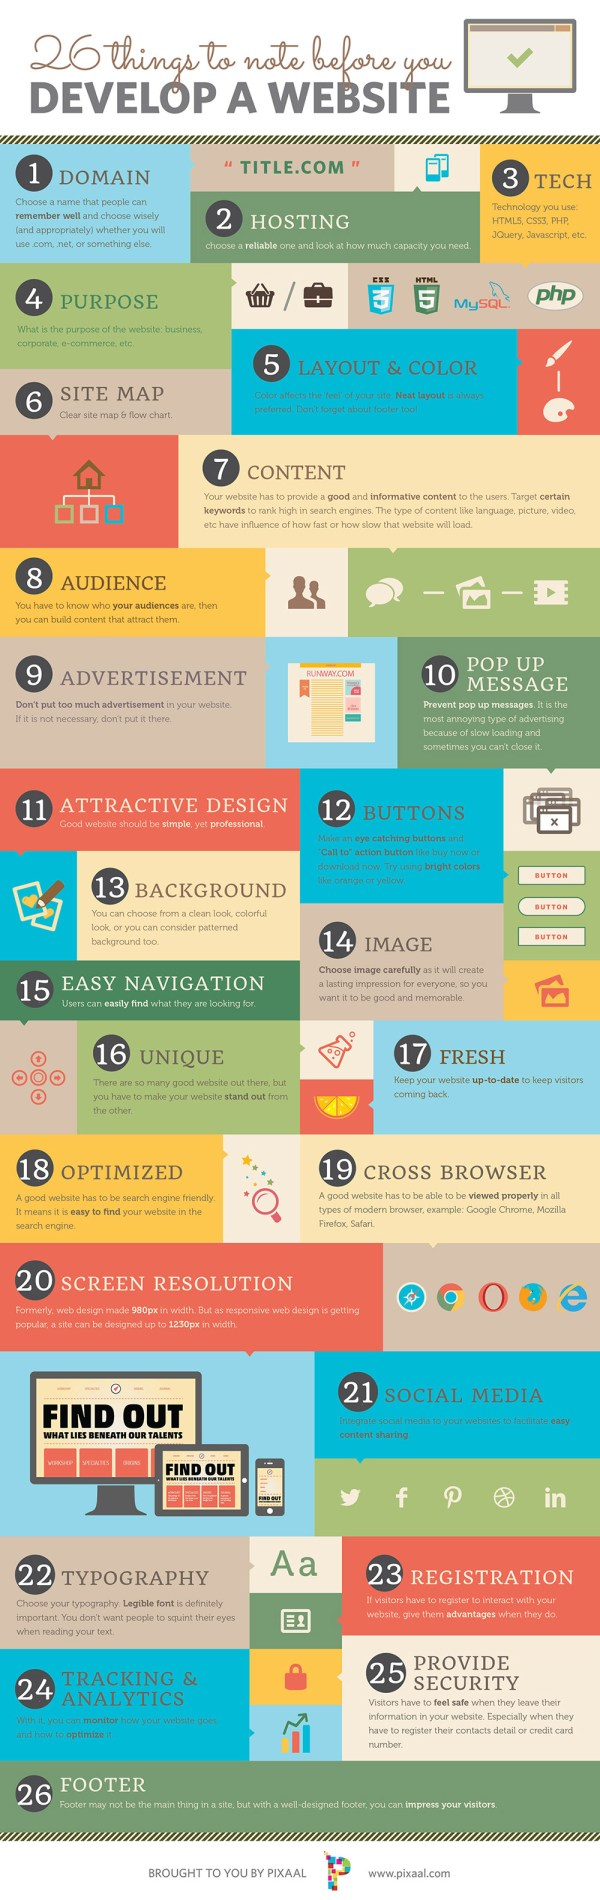 26-things-to-note-before-you-develop-a-website